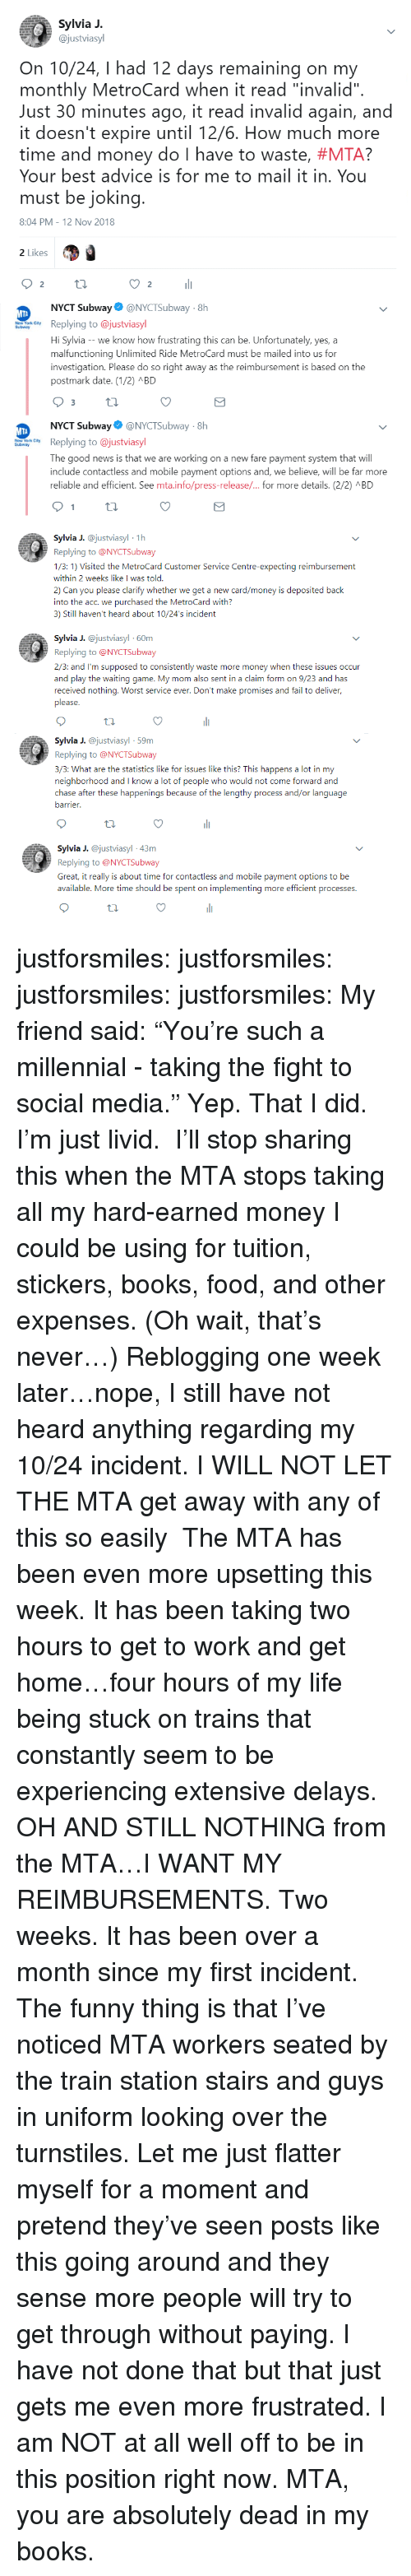 "Flatter: Sylvia J.  @justviasyl  On 10/24, I had 12 days remaining on my  monthly MetroCard when it read ""invalid""  Just 30 minutes ago, it read invalid again, and  it doesn't expire until 12/6. How much more  time and money do I have to waste, #MTA?  Your best advice is for me to mail it in. You  must be jokin  8:04 PM-12 Nov 2018  2 Likes  2  li  2  NYCT Subway@NYCTSubway-8h  wReplying to @justviasyl  Hi Sylvia - -we know how frustrating this can be. Unfortunately, yes, a  malfunctioning Unlimited Ride MetroCard must be mailed into us for  investigation. Please do so right away as the reimbursement is based on the  postmark date. (12) ABD  NYCT Subway@NYCTSubway 8h  Replying to @justviasyl  The good news is that we are working on a new fare payment system that will  include contactless and mobile payment options and, we believe, will be far more  reliable and efficient. See mtainfo/press-release/ for more details. (2/2) л BD  a J. @justviasyl 1h  Replying to @NYCTSubway  1/3: 1) Visited the MetroCard Customer Service Centre-expecting reimbursement  within 2 weeks like I was told.  2) Can you please clarify whether we get a new card/money is deposited baclk  into the acc. we purchased the MetroCard with?  3) Still haven't heard about 10/24's incident  Sylvia J. @justviasyl 60m  Replying to @NYCTSubway  2/3: and I'm supposed to consistently waste more money when these issues occur  and play the waiting game. My mom also sent in a claim form on 9/23 and has  received nothing. Worst service ever. Don't make promises and fail to deliver,  please  Syia J. @justviasyl 59m  Replying to @NYCTSubway  3/3: What are the statistics like for issues like this? This happens a lot in my  neighborhood and I know a lot of people who would not come forward and  chase after these happenings because of the lengthy process and/or language  arrier  Sylia J. @justviasyl 43m  Replying to @NYCTSubway  Great, it really is about time for contactless and mobile payment options to be  available. More time should be spent on implementing more efficient processes. justforsmiles:  justforsmiles:  justforsmiles:  justforsmiles: My friend said: ""You're such a millennial - taking the fight to social media."" Yep. That I did. I'm just livid.  I'll stop sharing this when the MTA stops taking all my hard-earned money I could be using for tuition, stickers, books, food, and other expenses. (Oh wait, that's never…)  Reblogging one week later…nope, I still have not heard anything regarding my 10/24 incident. I WILL NOT LET THE MTA get away with any of this so easily   The MTA has been even more upsetting this week. It has been taking two hours to get to work and get home…four hours of my life being stuck on trains that constantly seem to be experiencing extensive delays. OH AND STILL NOTHING from the MTA…I WANT MY REIMBURSEMENTS. Two weeks. It has been over a month since my first incident. The funny thing is that I've noticed MTA workers seated by the train station stairs and guys in uniform looking over the turnstiles. Let me just flatter myself for a moment and pretend they've seen posts like this going around and they sense more people will try to get through without paying. I have not done that but that just gets me even more frustrated. I am NOT at all well off to be in this position right now. MTA, you are absolutely dead in my books."